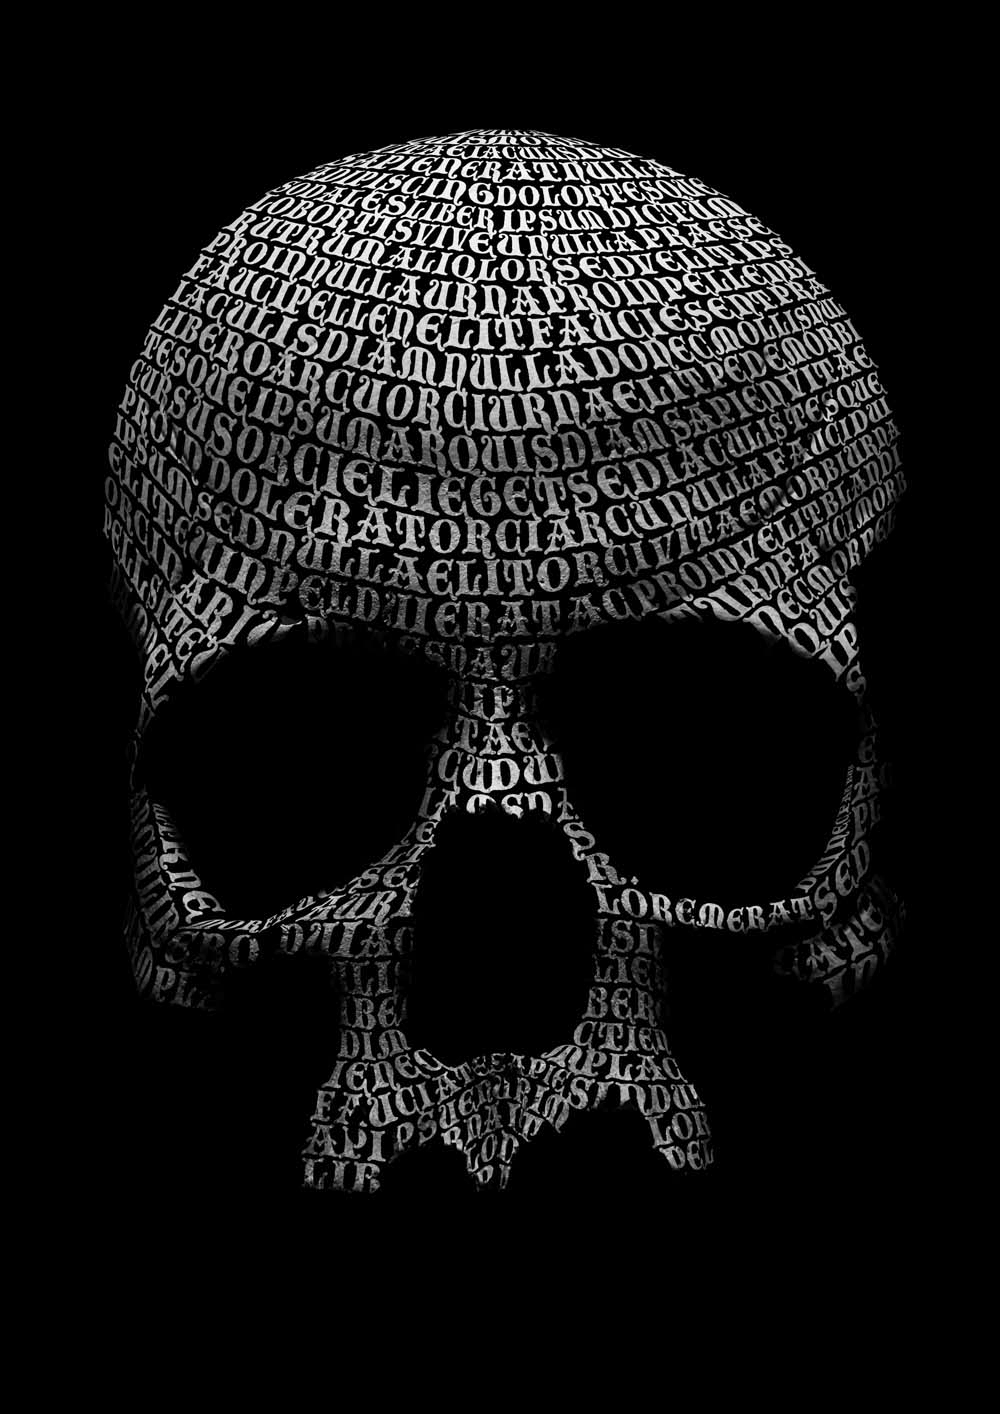 shop tutorial Create a skull out of type Digital Arts